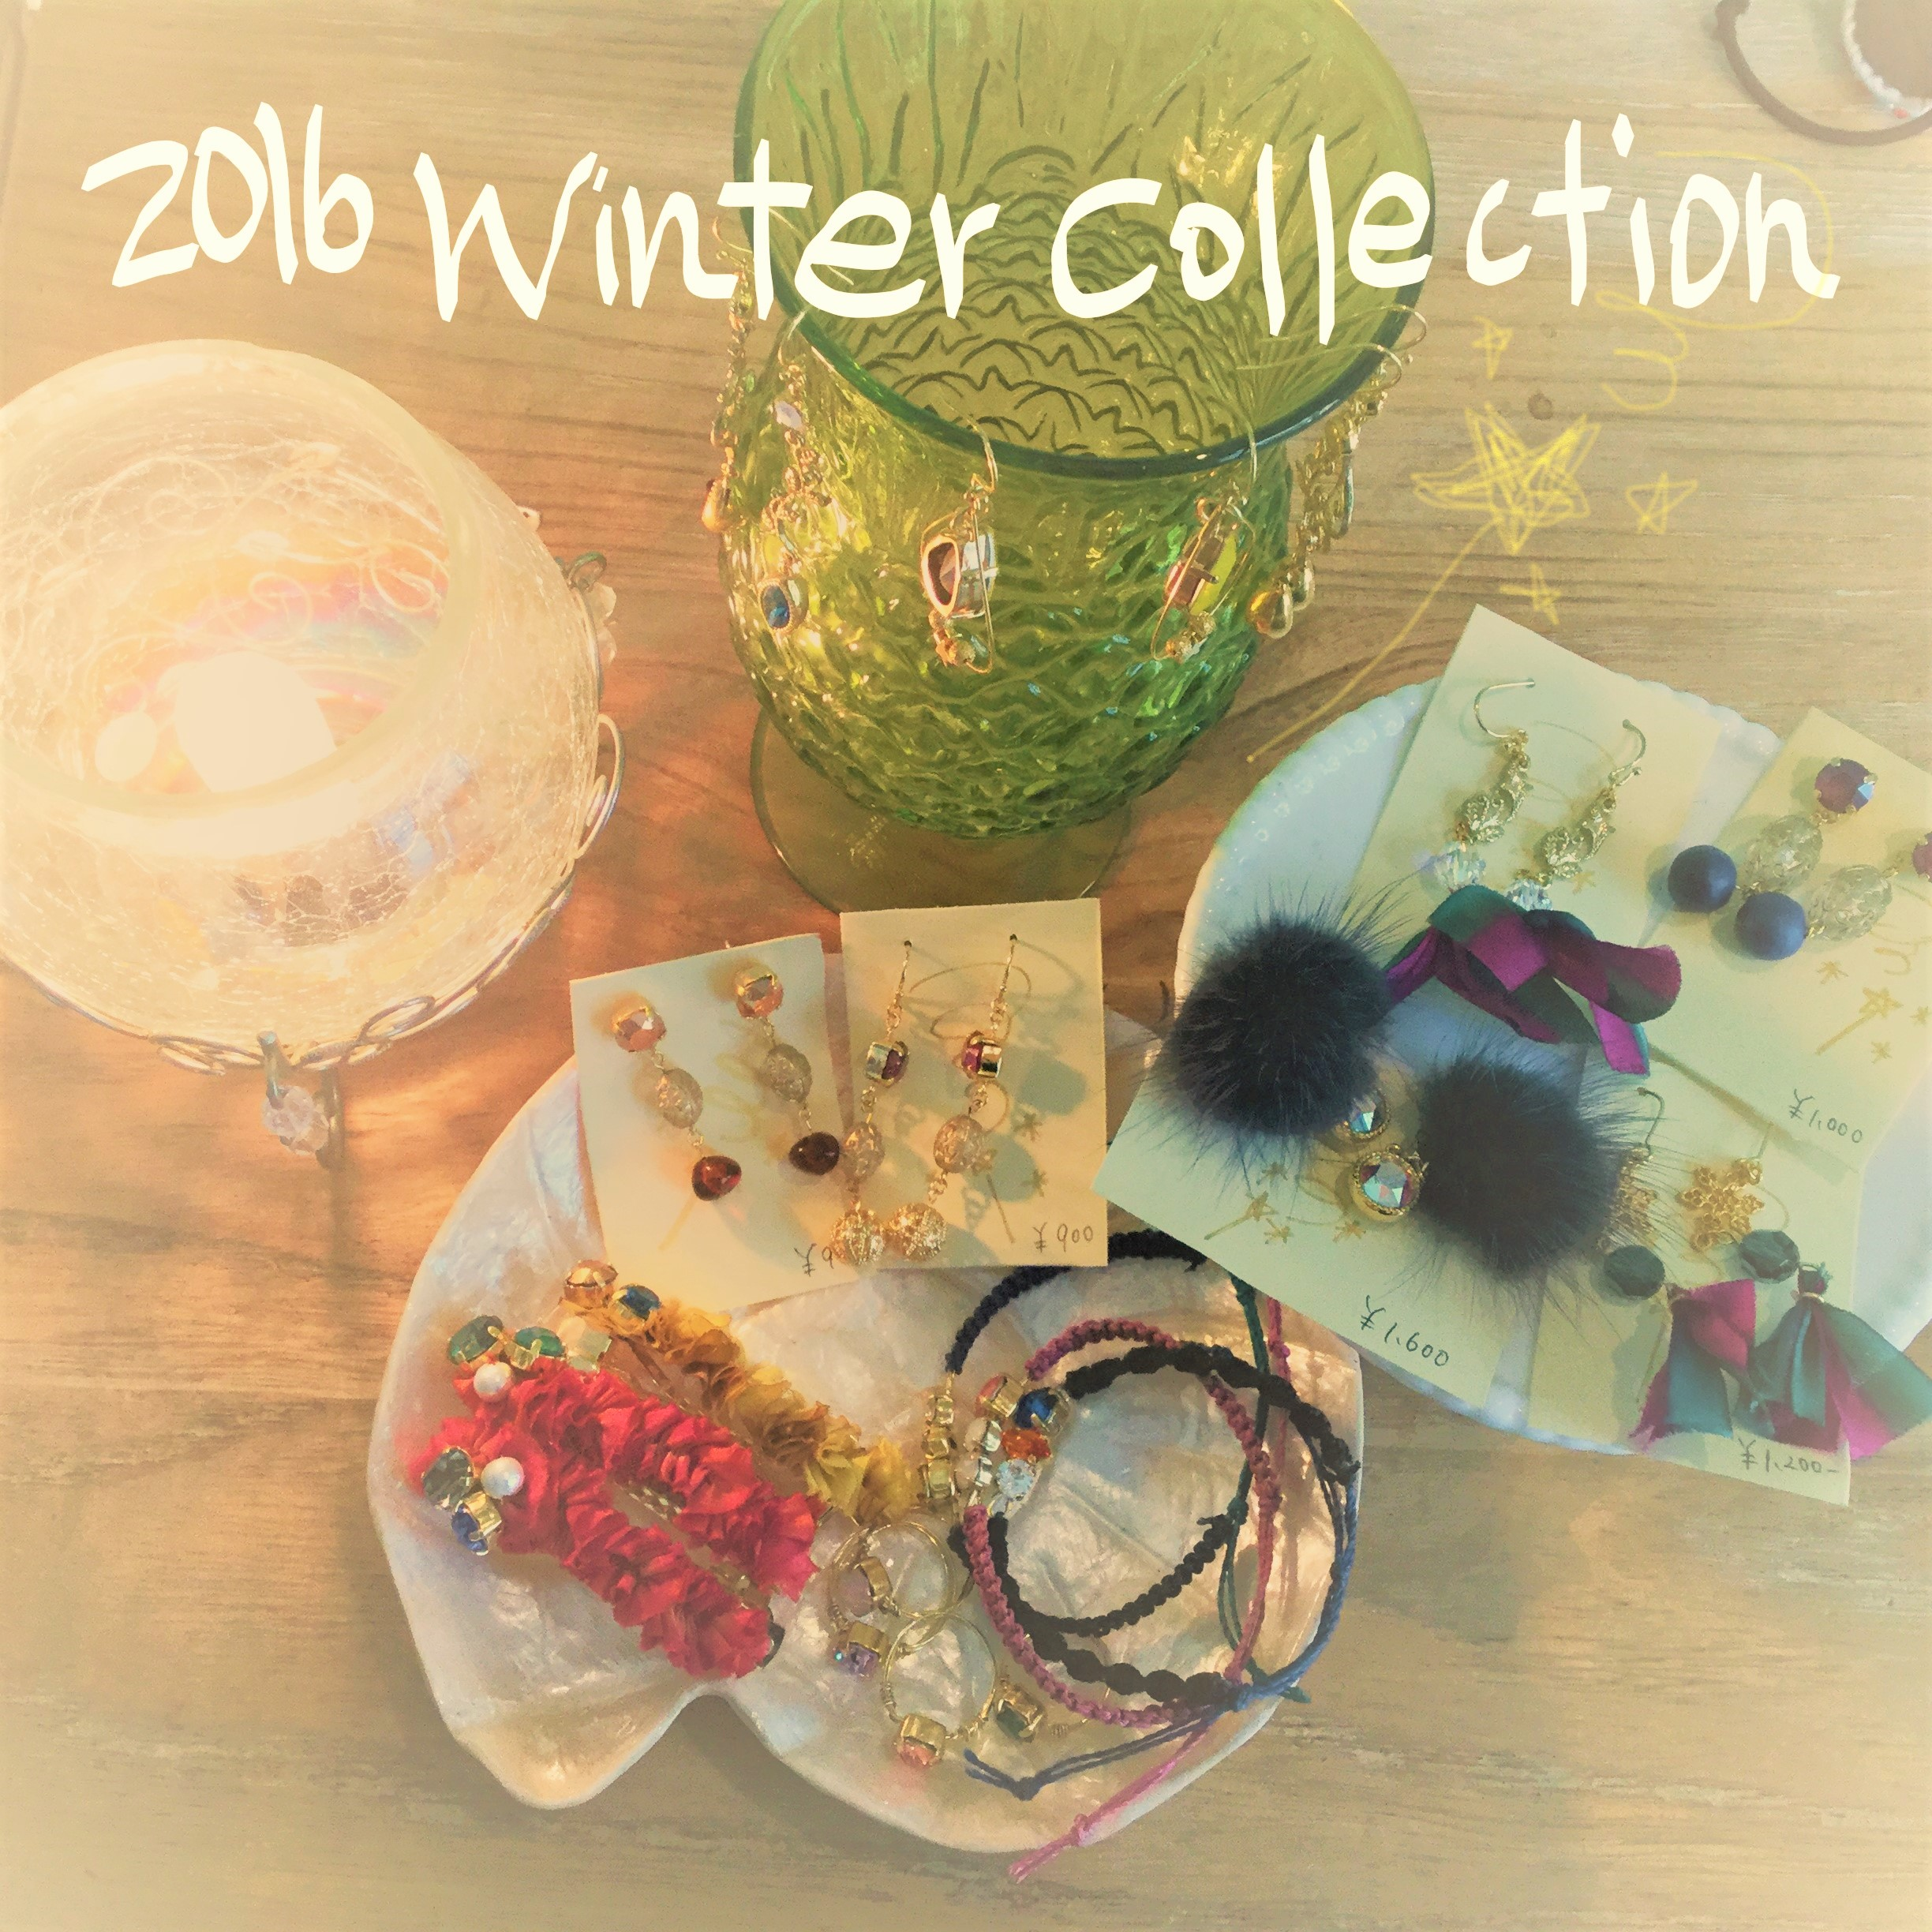 2016winter collection